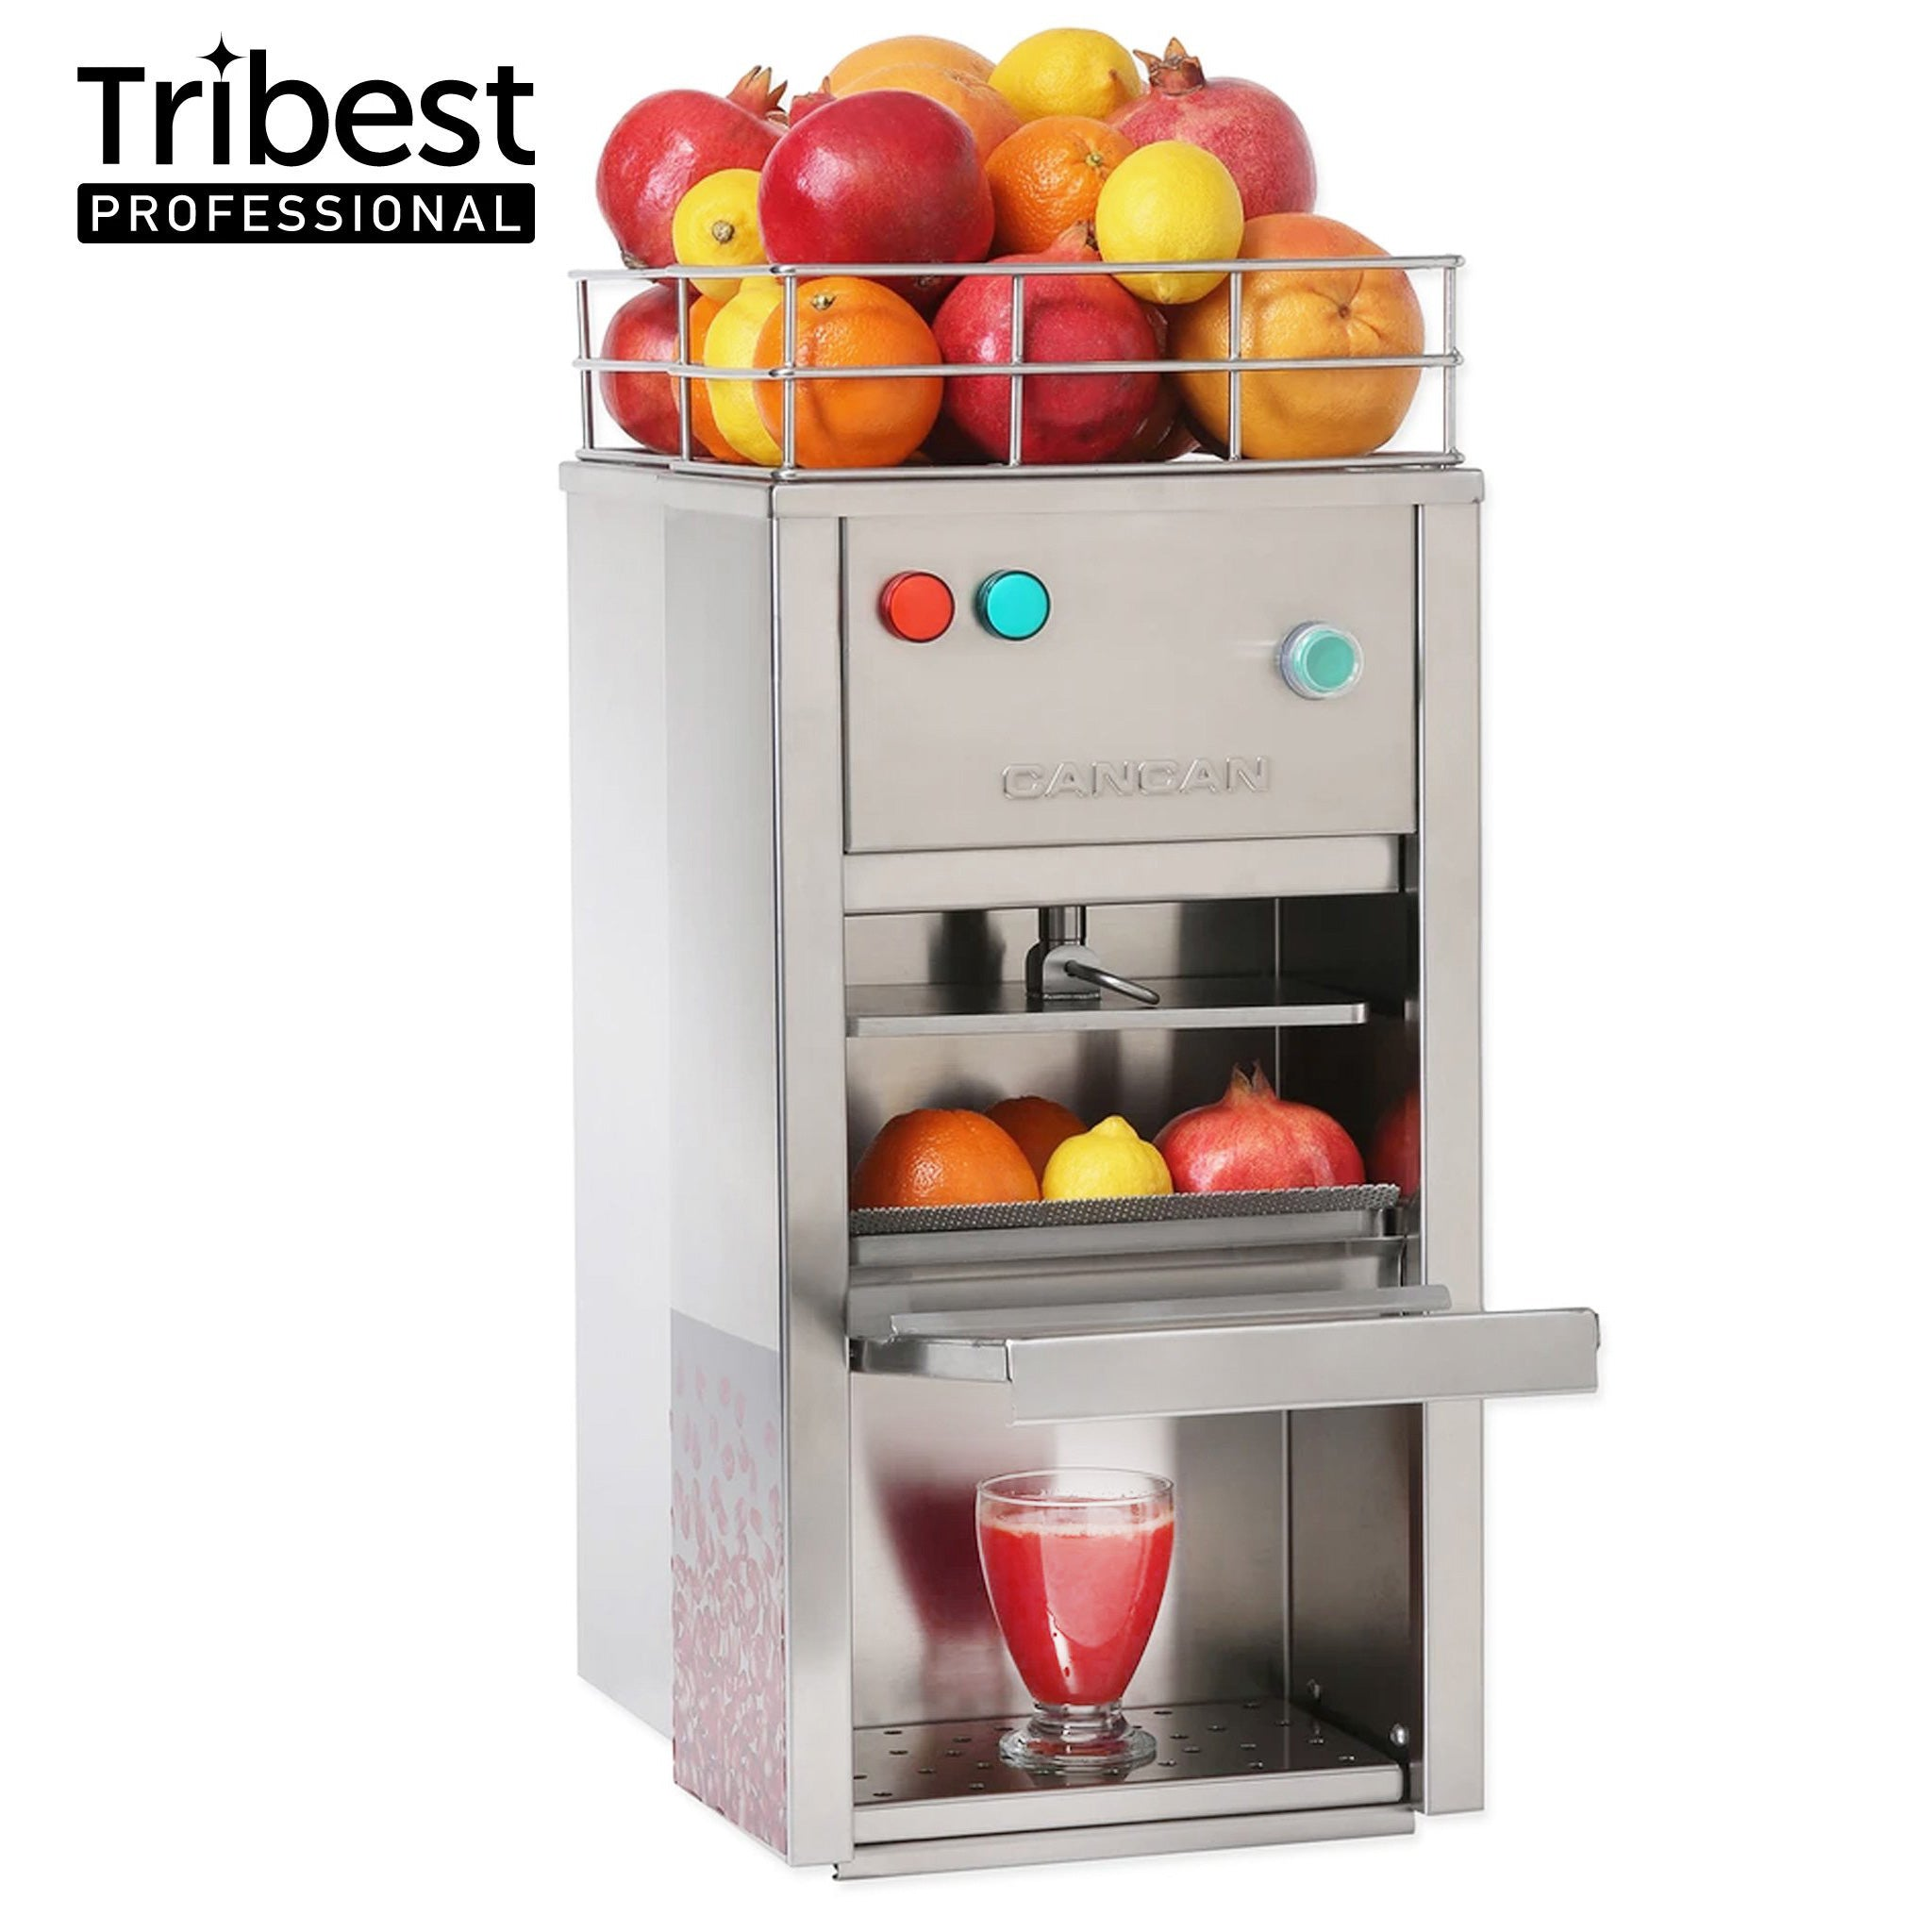 Tribest Professional Cancan Hydraulic Pomegranate Press